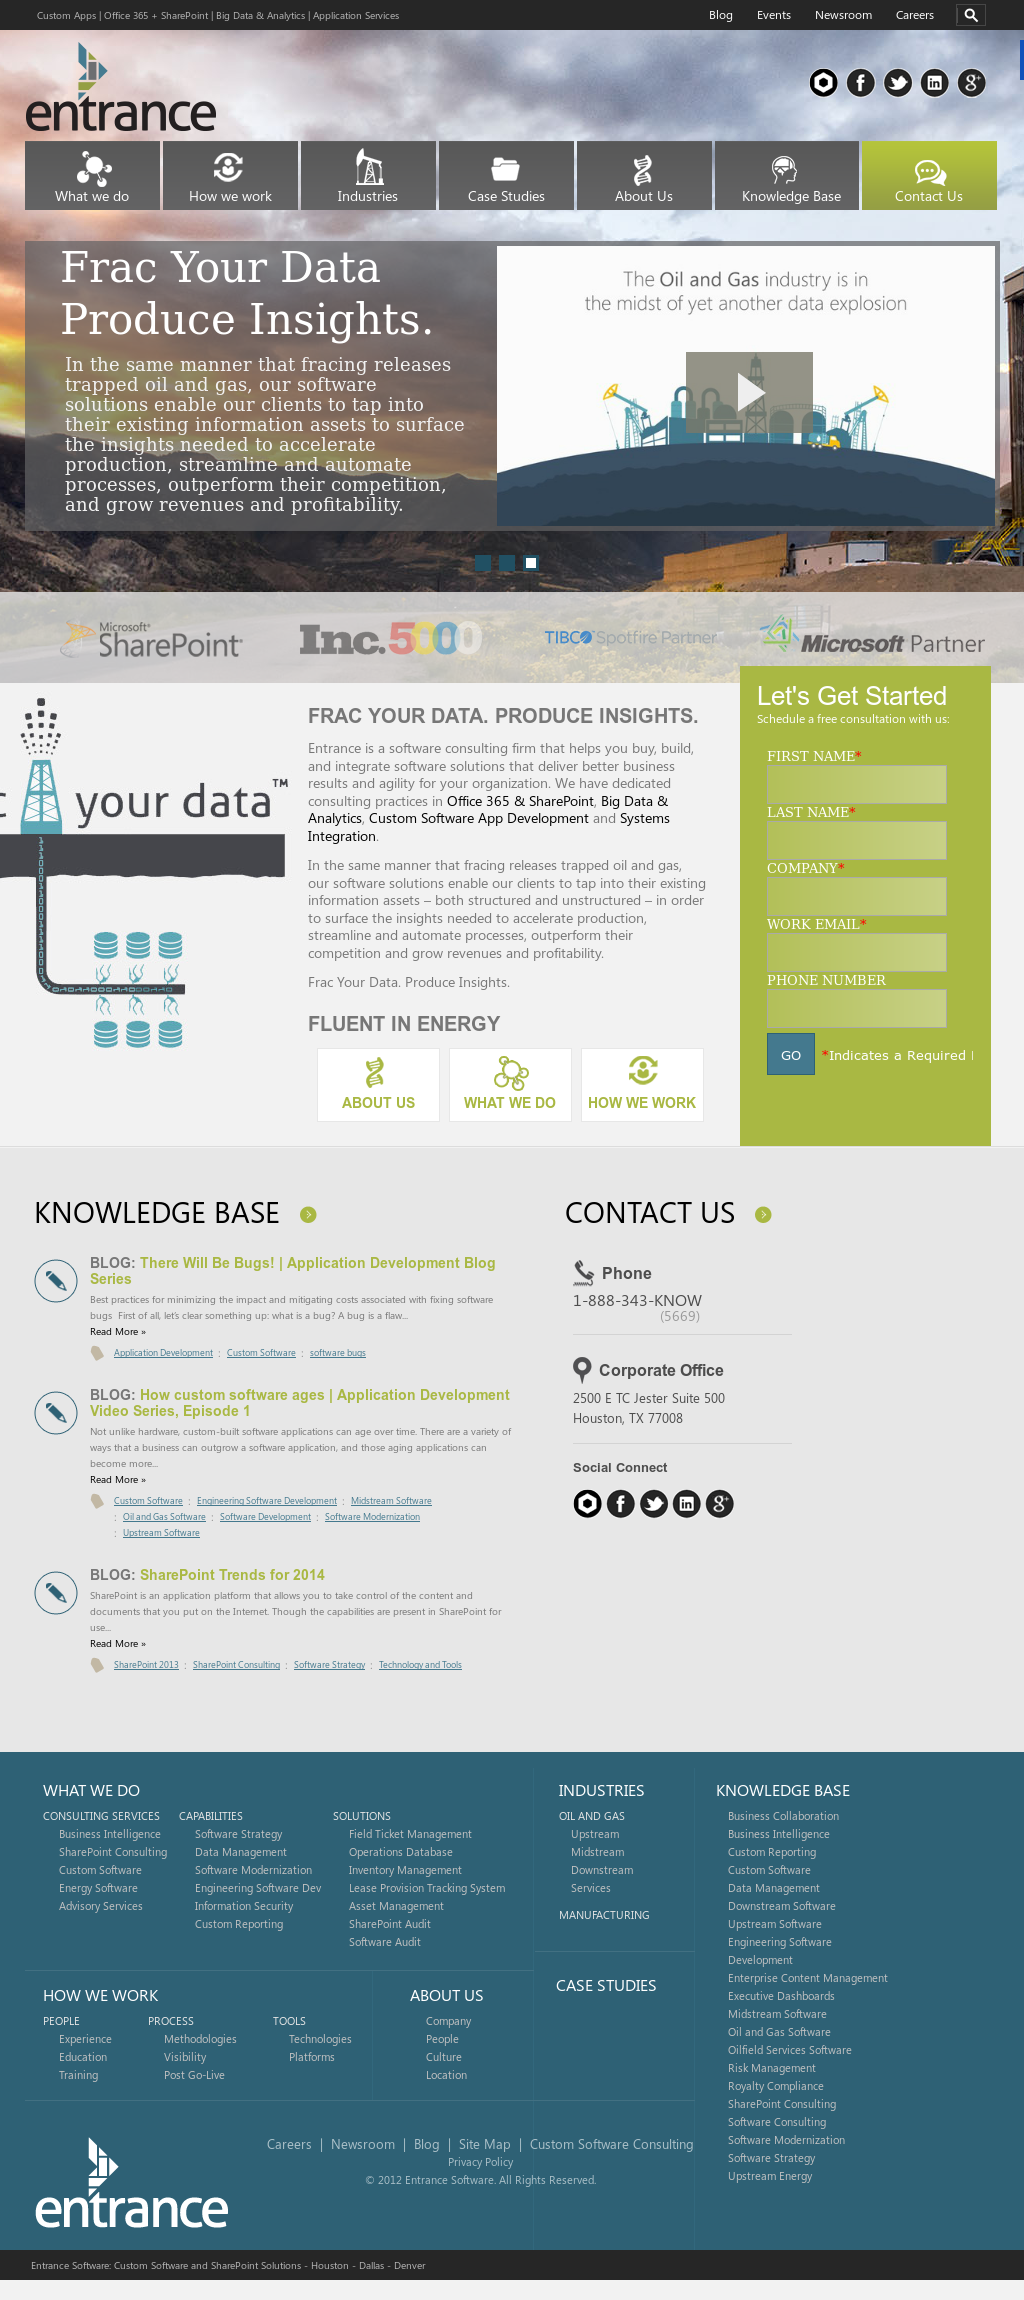 Owler Reports - Entrance Blog Spotfire Dashboard Demo of a